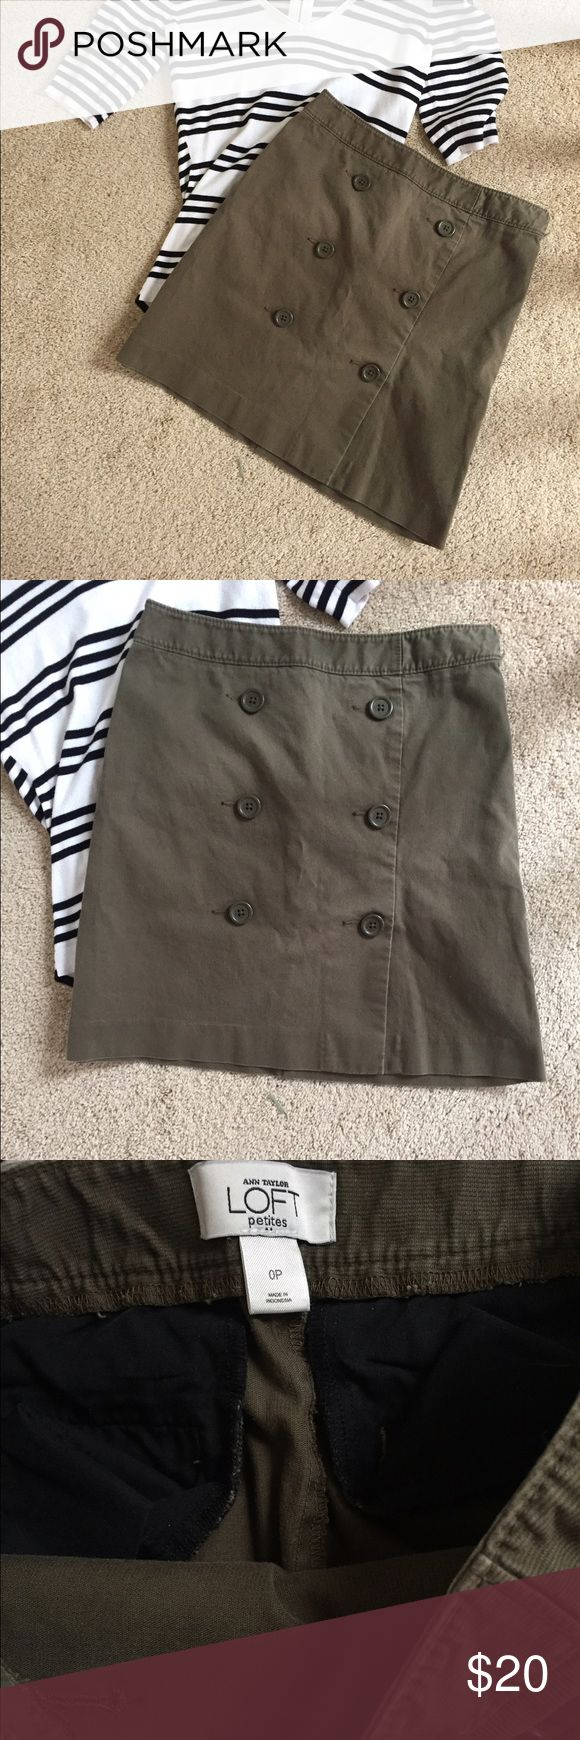 Green military style skirt Green, corduroy skirt with button in the front. A size zero petite. Great condition and perfect paired with anything! LOFT Skirts Pencil